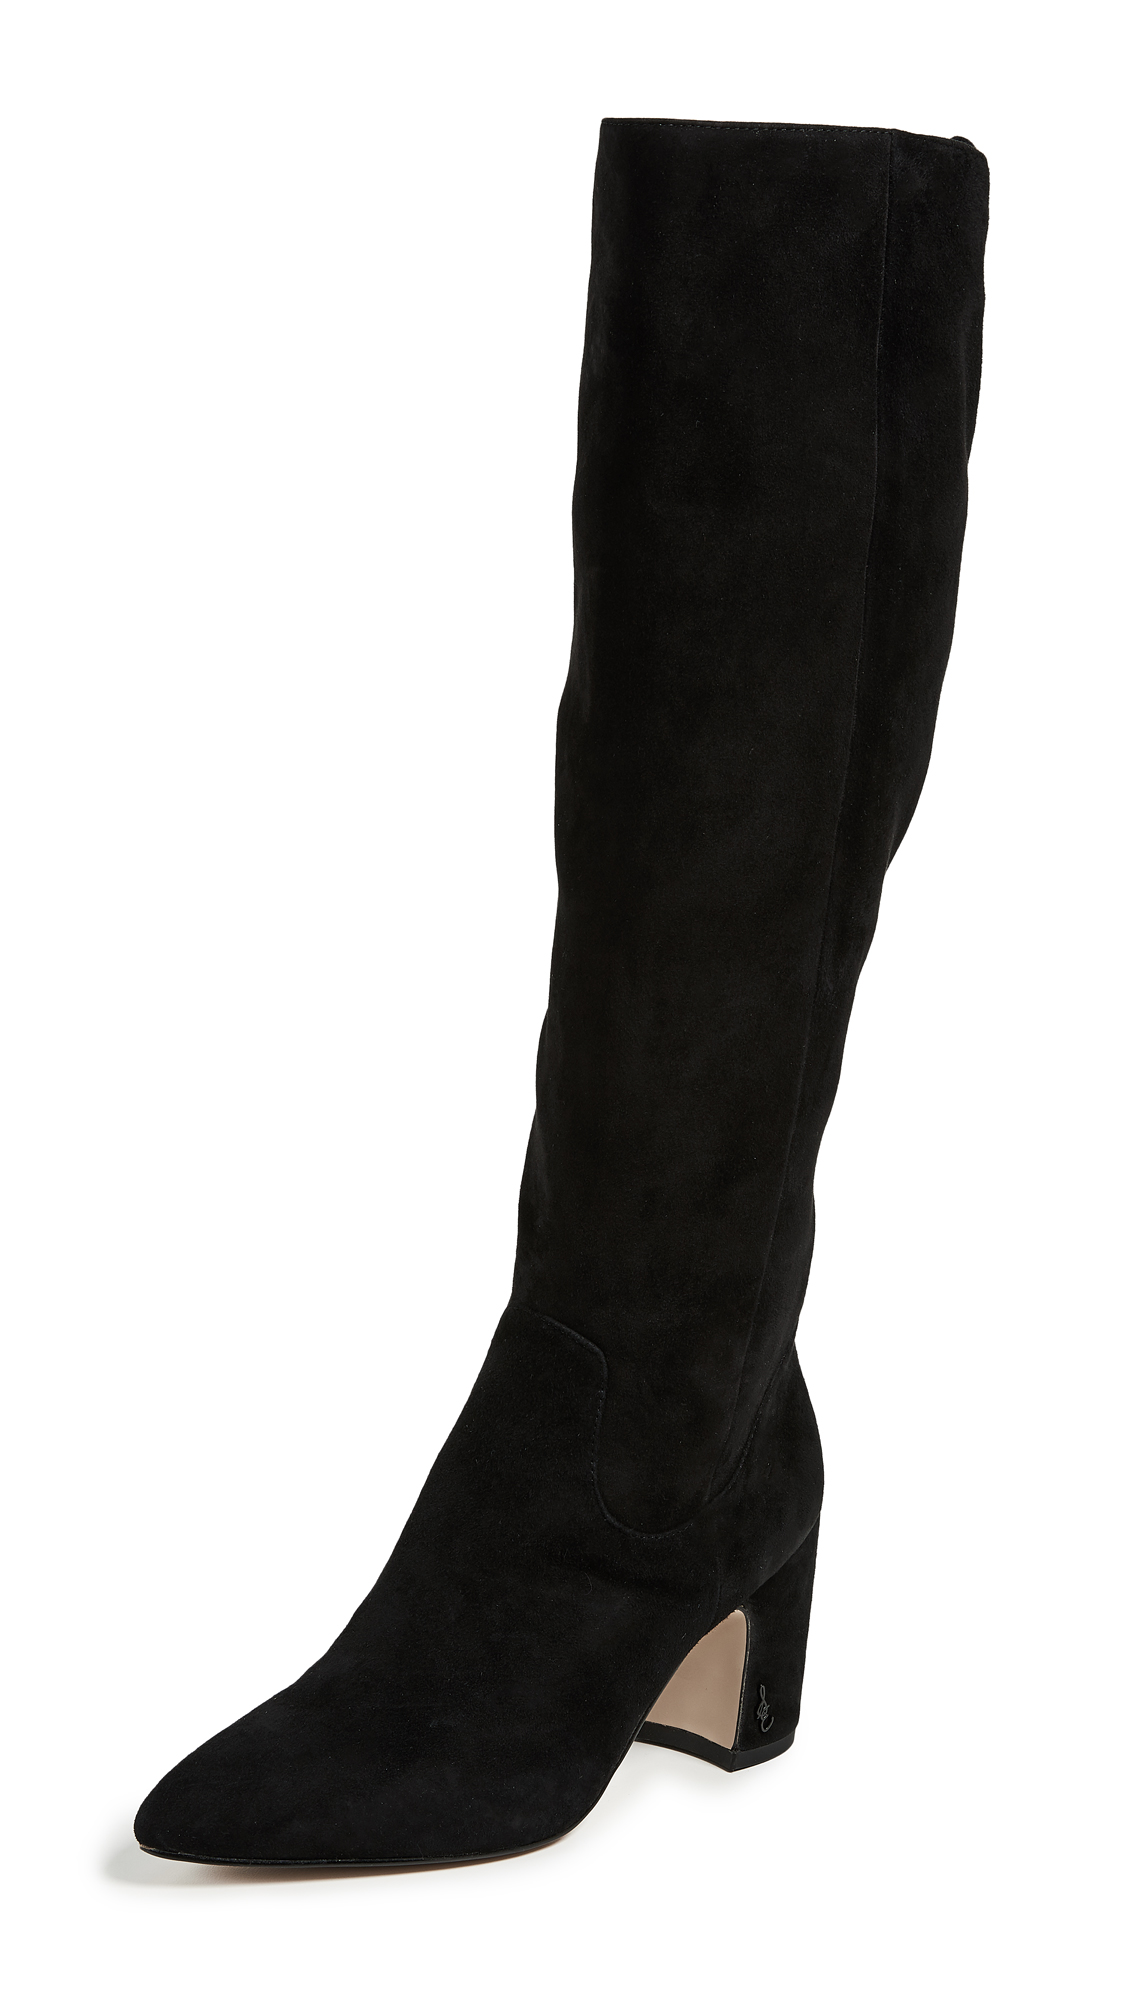 Sam Edelman Hai Tall Boots - Black